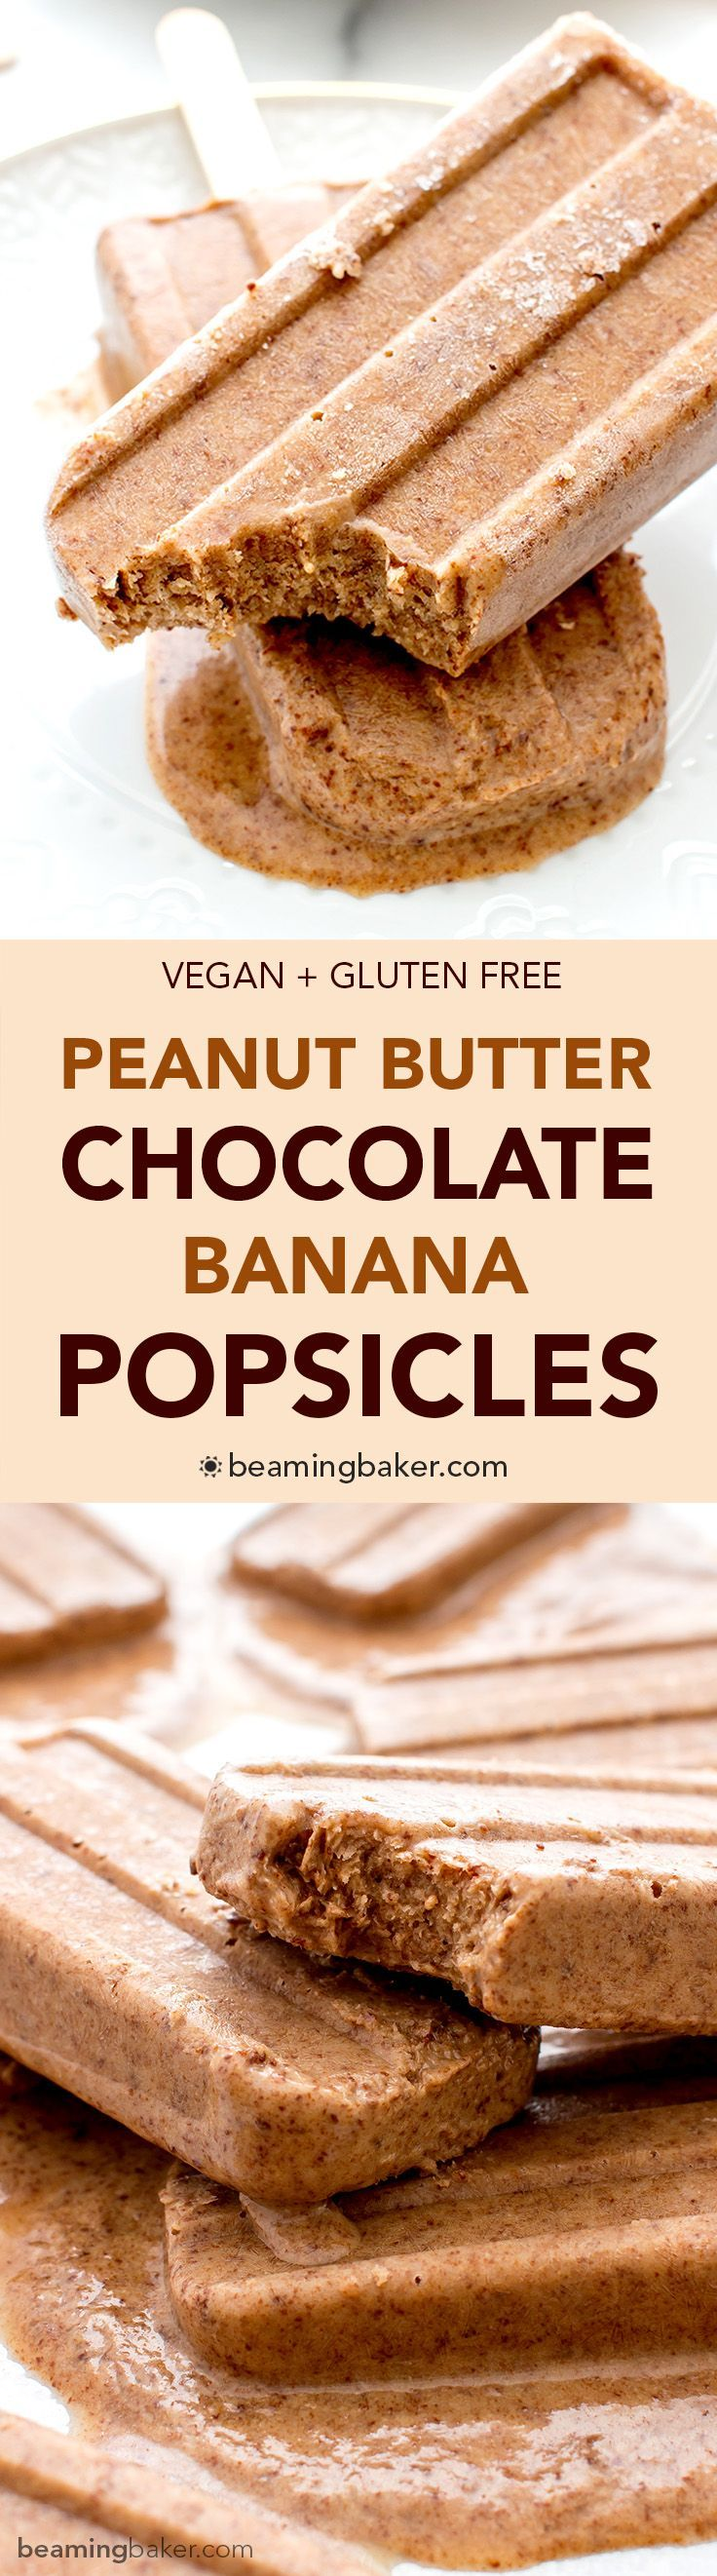 Chocolate Peanut Butter Banana Popsicles (V+GF): Just 6 ingredients to creamy, delicious chocolate peanut butter popsicles that taste like an ice cream sundae. #Vegan #GlutenFree | BeamingBaker.com